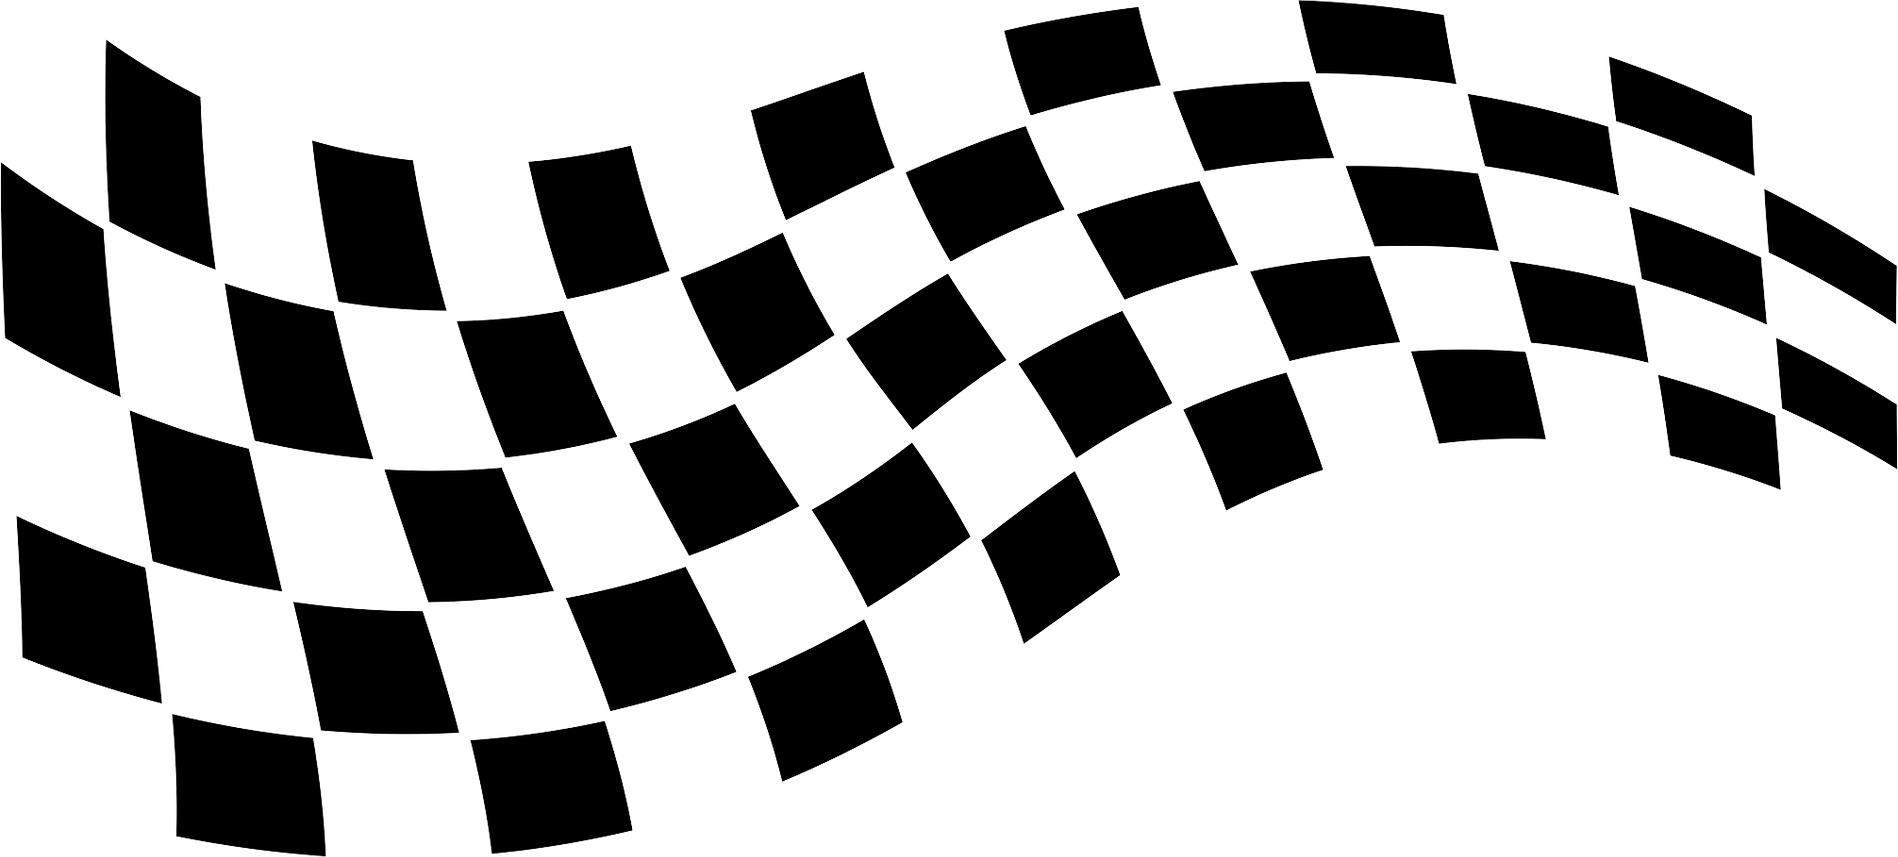 checkered-flag-silhouette-5.png